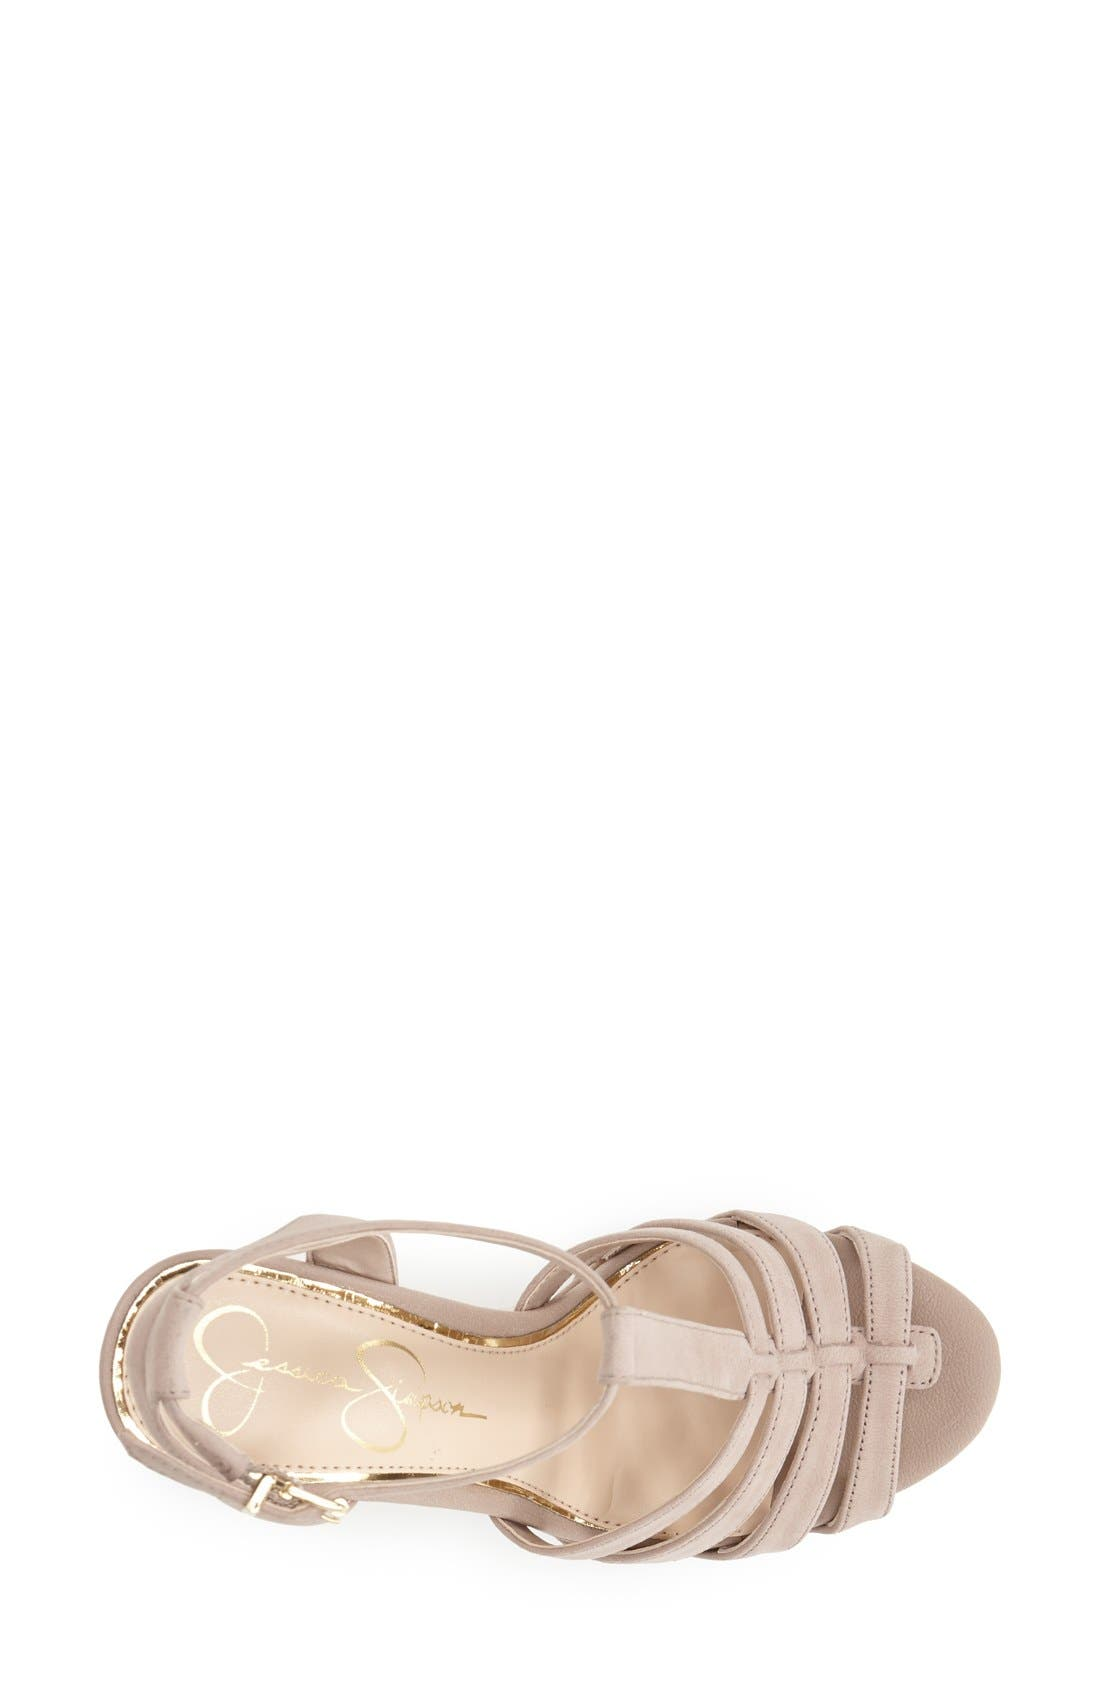 Alternate Image 3  - Jessica Simpson 'Bristol' Ankle Strap Platform Wedge Sandal (Women)